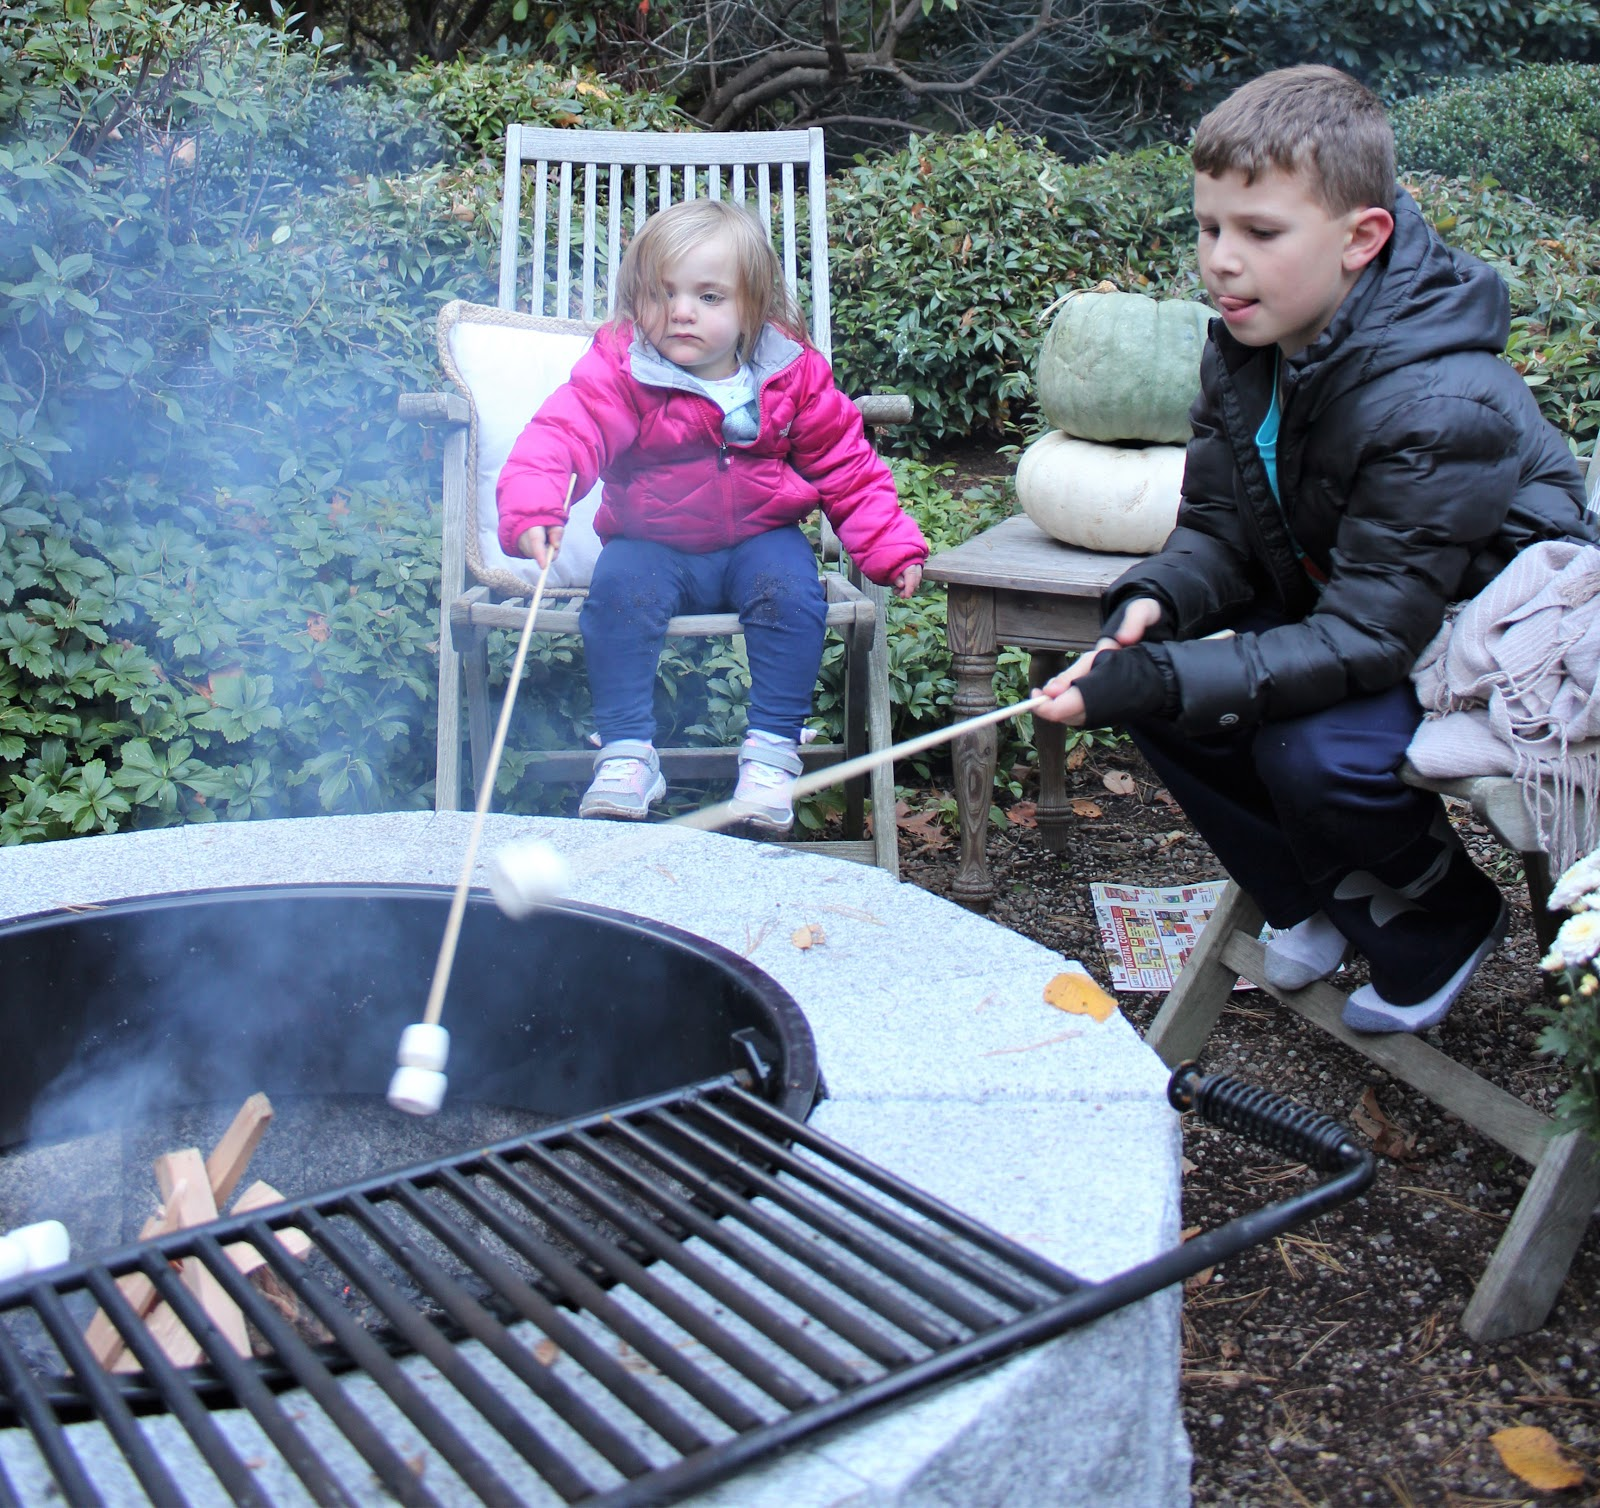 Kids roasting marshmallows by the fire pit